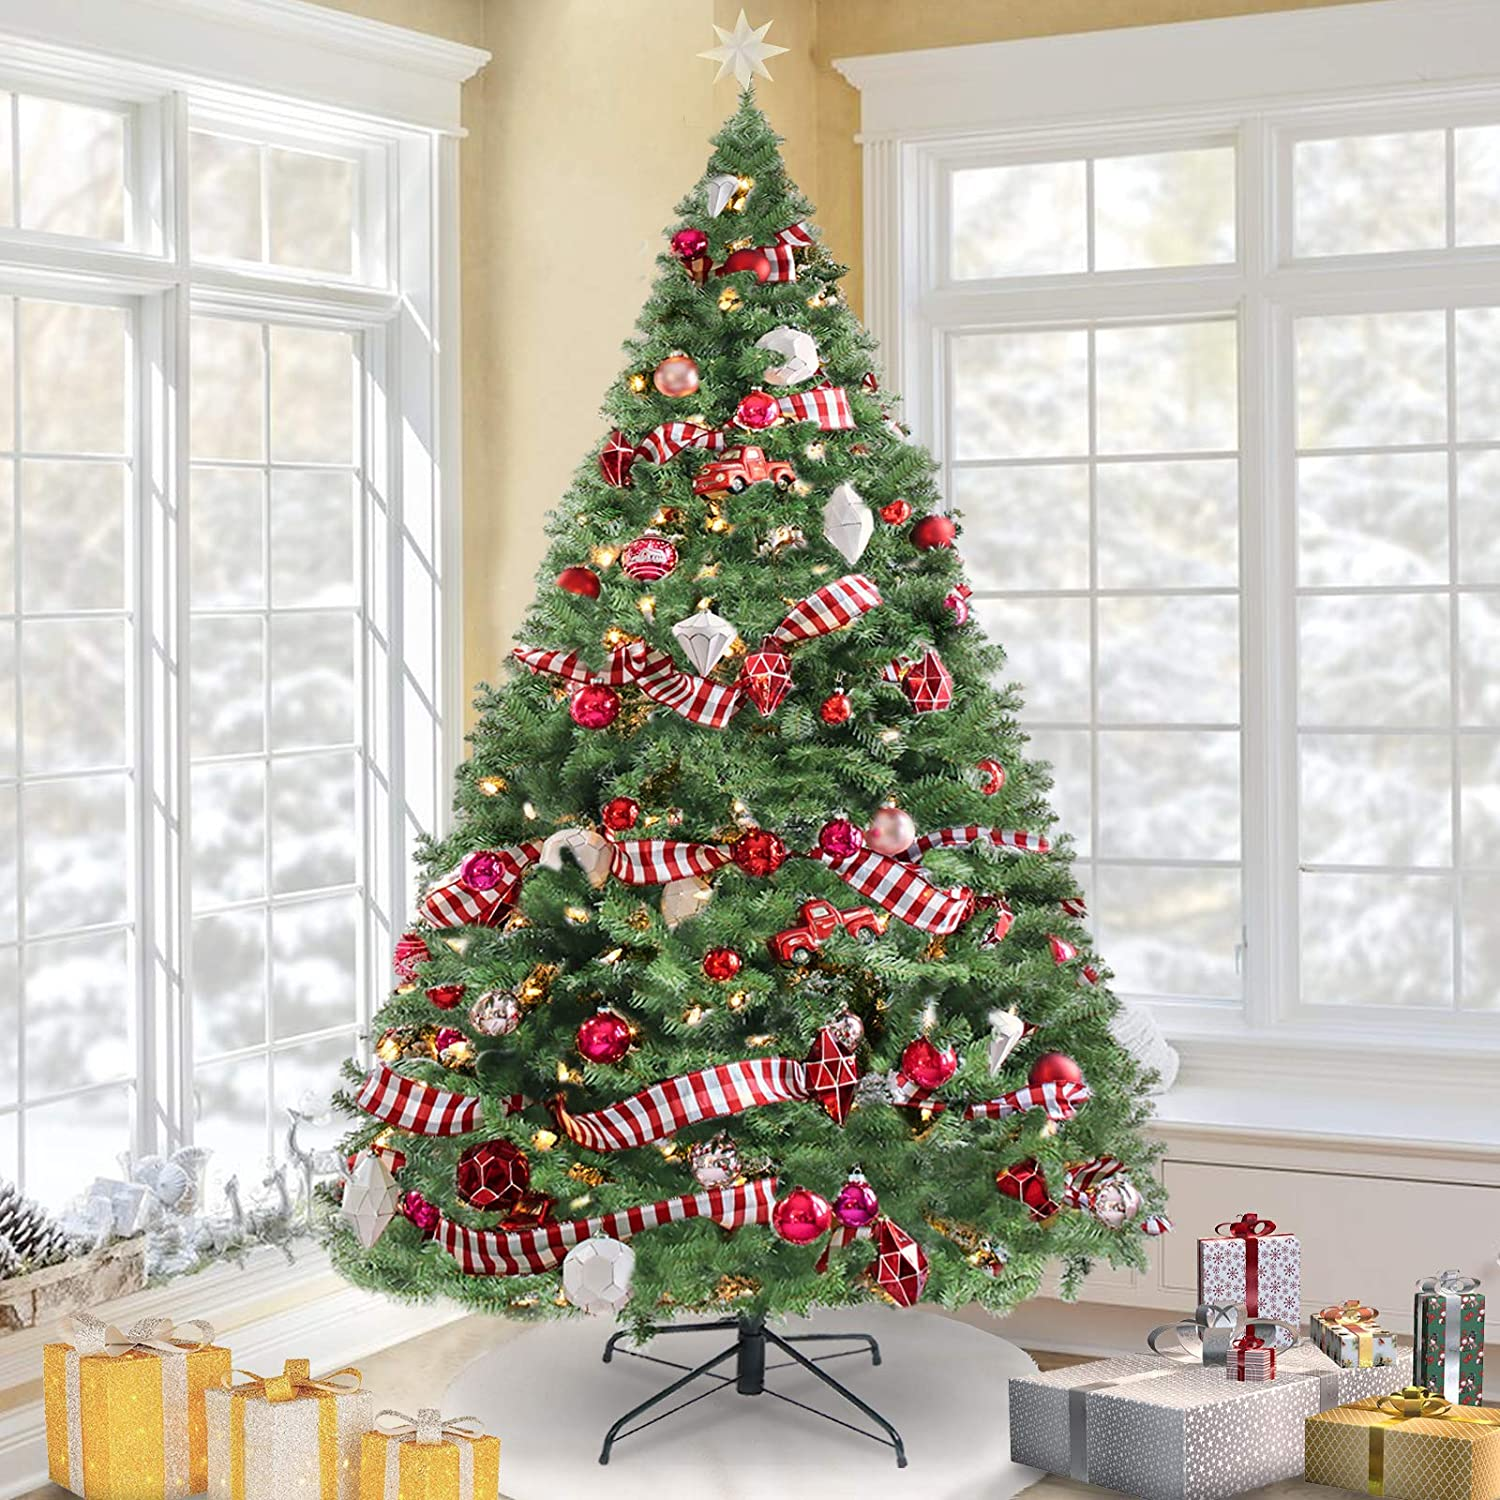 KingSo 7.5ft Christmas Tree Premium Spruce Hinged Artificial Full Tree for Home, Office, Party Christmas Decorations with Solid Metal Foldable Stand, Easy Assembly,1300 Tips